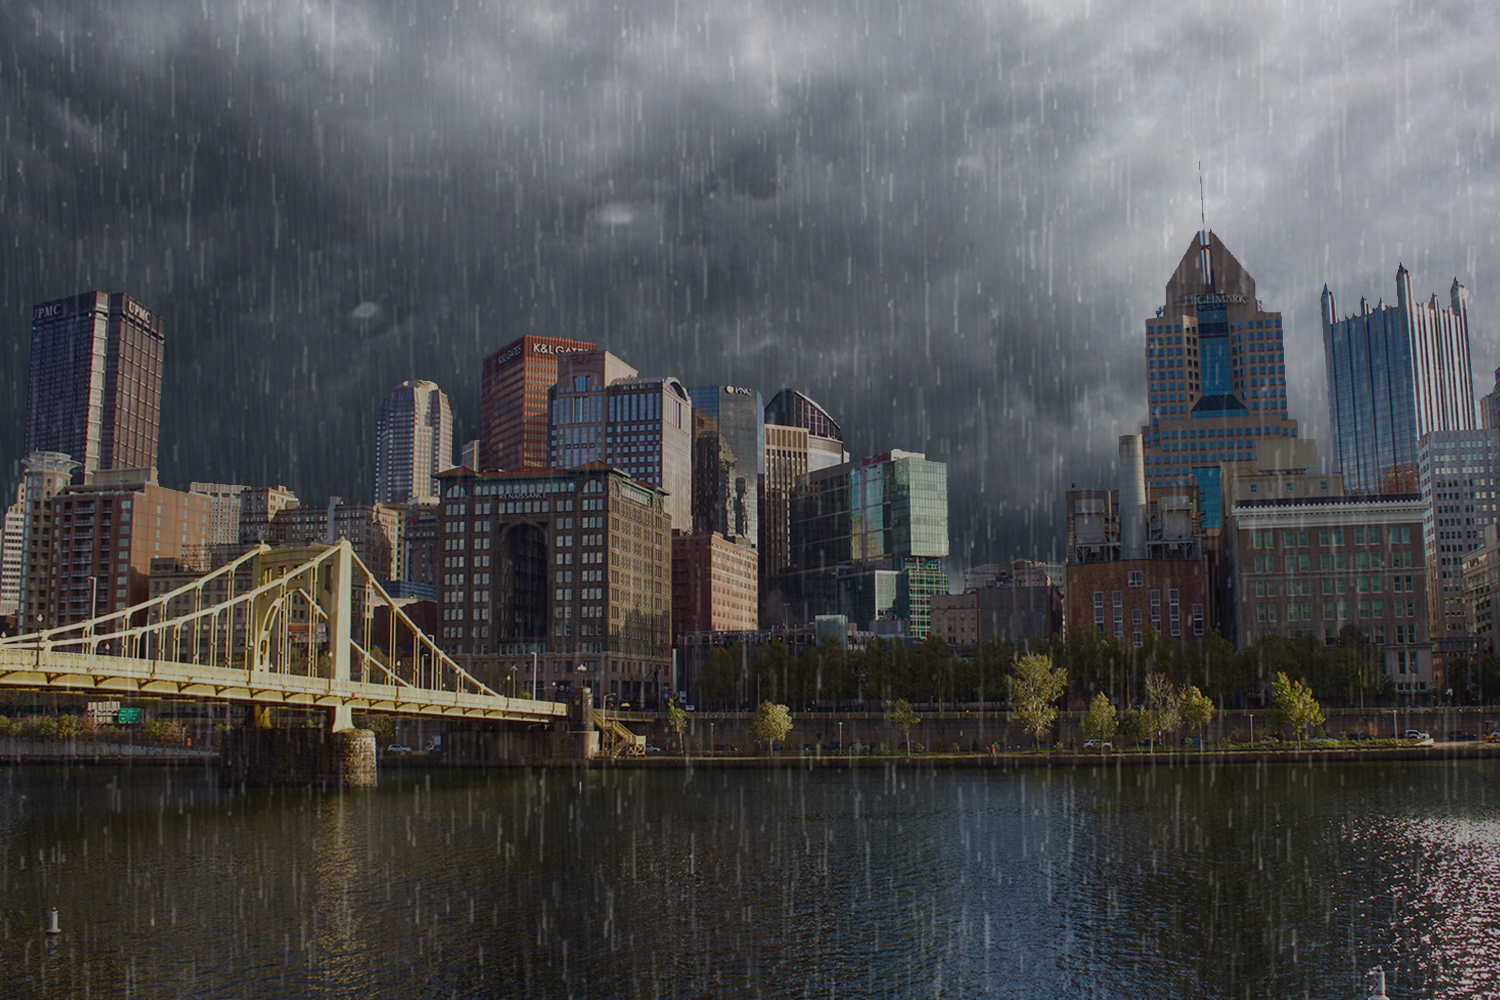 Pittsburgh shatters record for wettest year on record | RMU